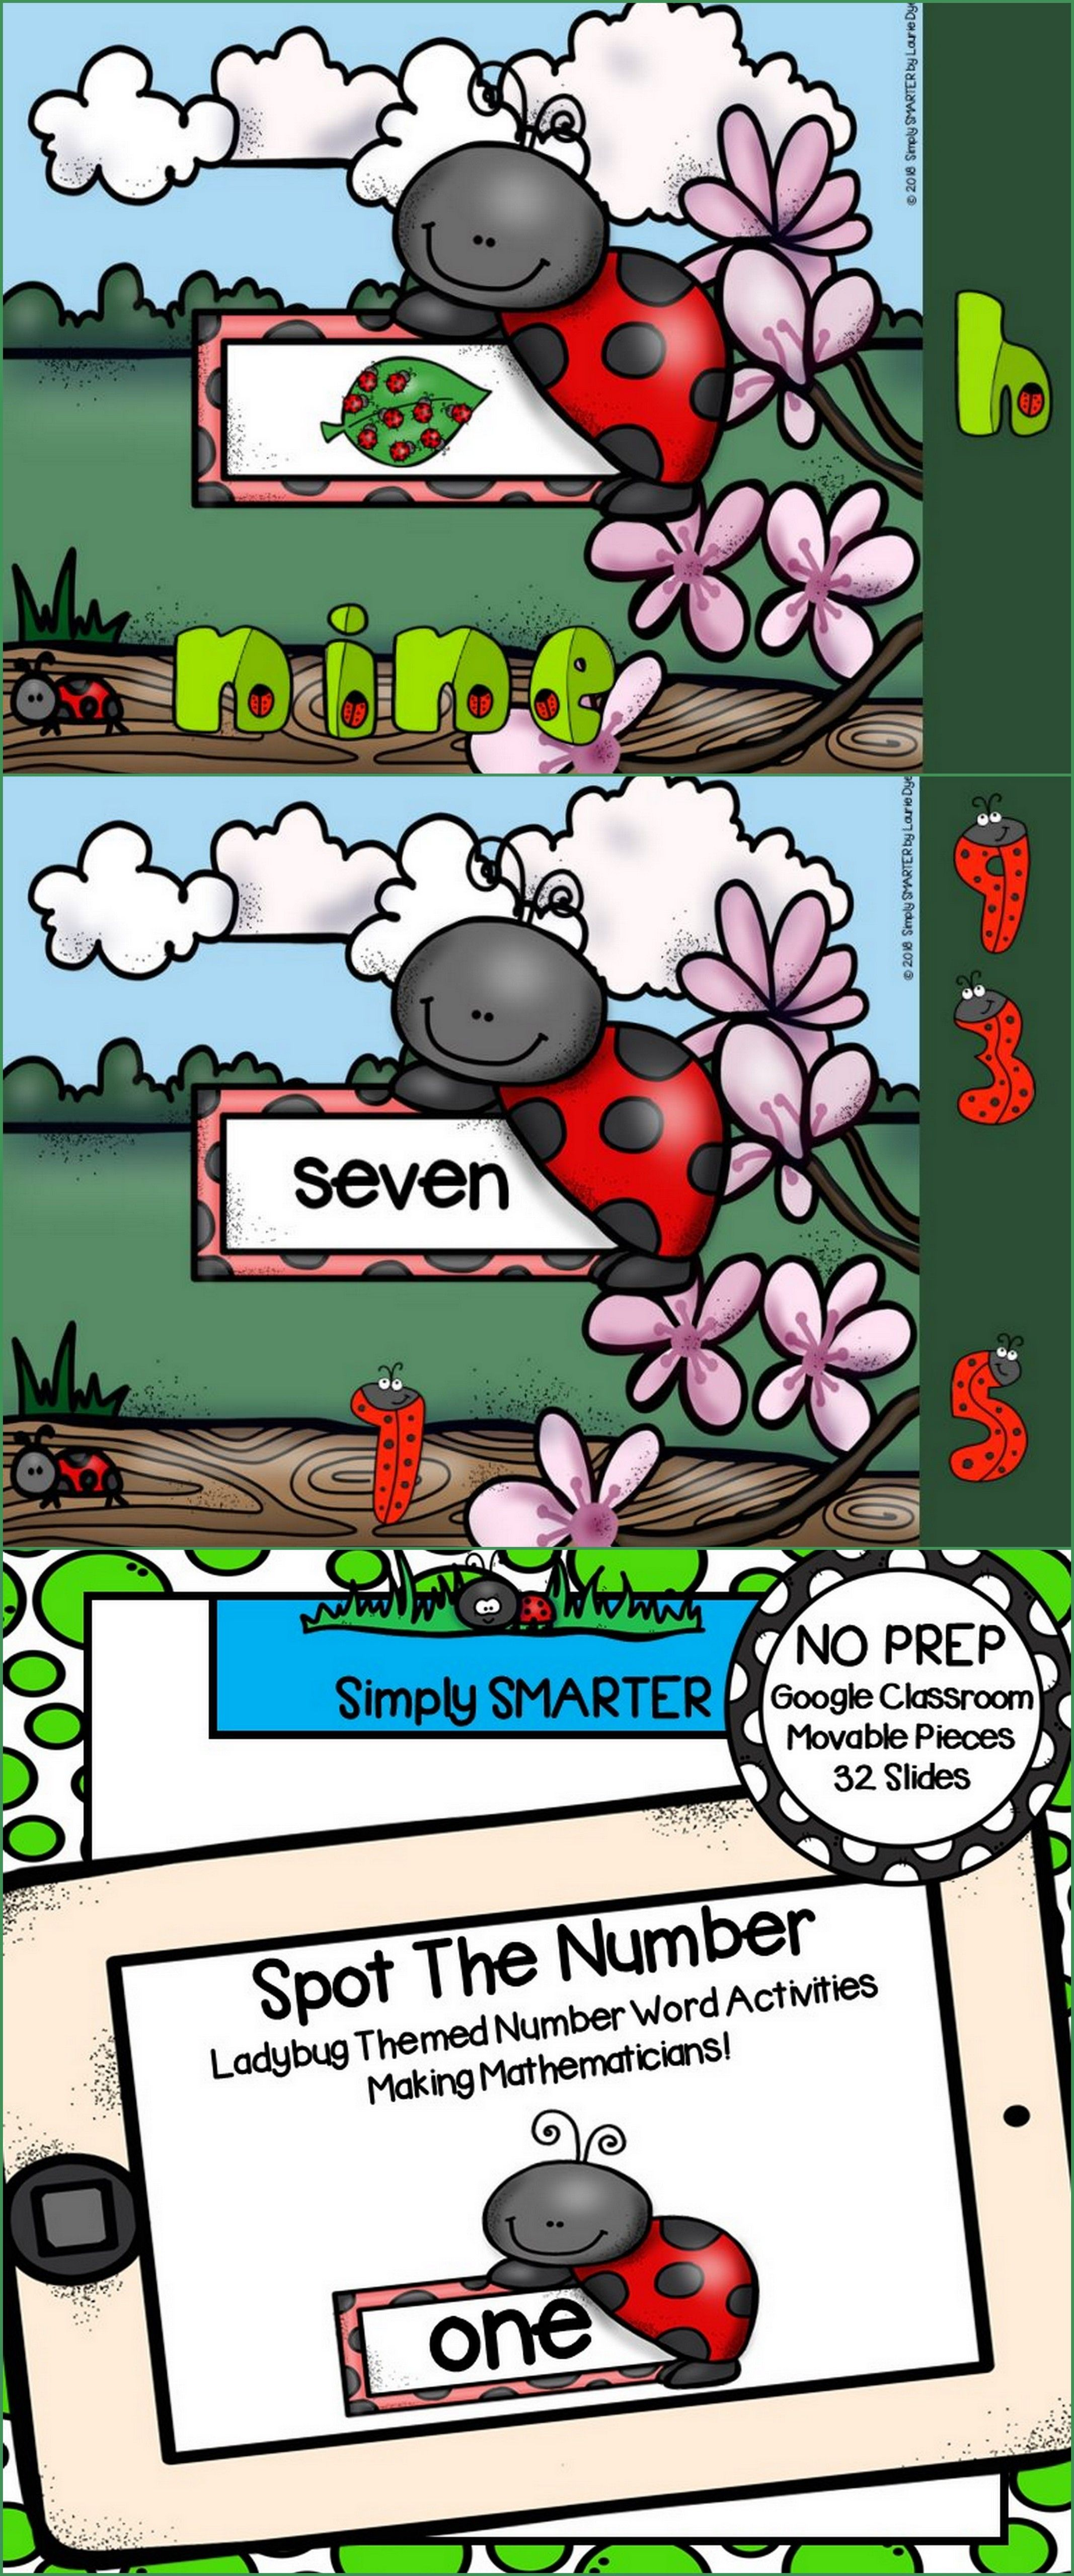 Ladybug Themed Number Word And Counting Activities For